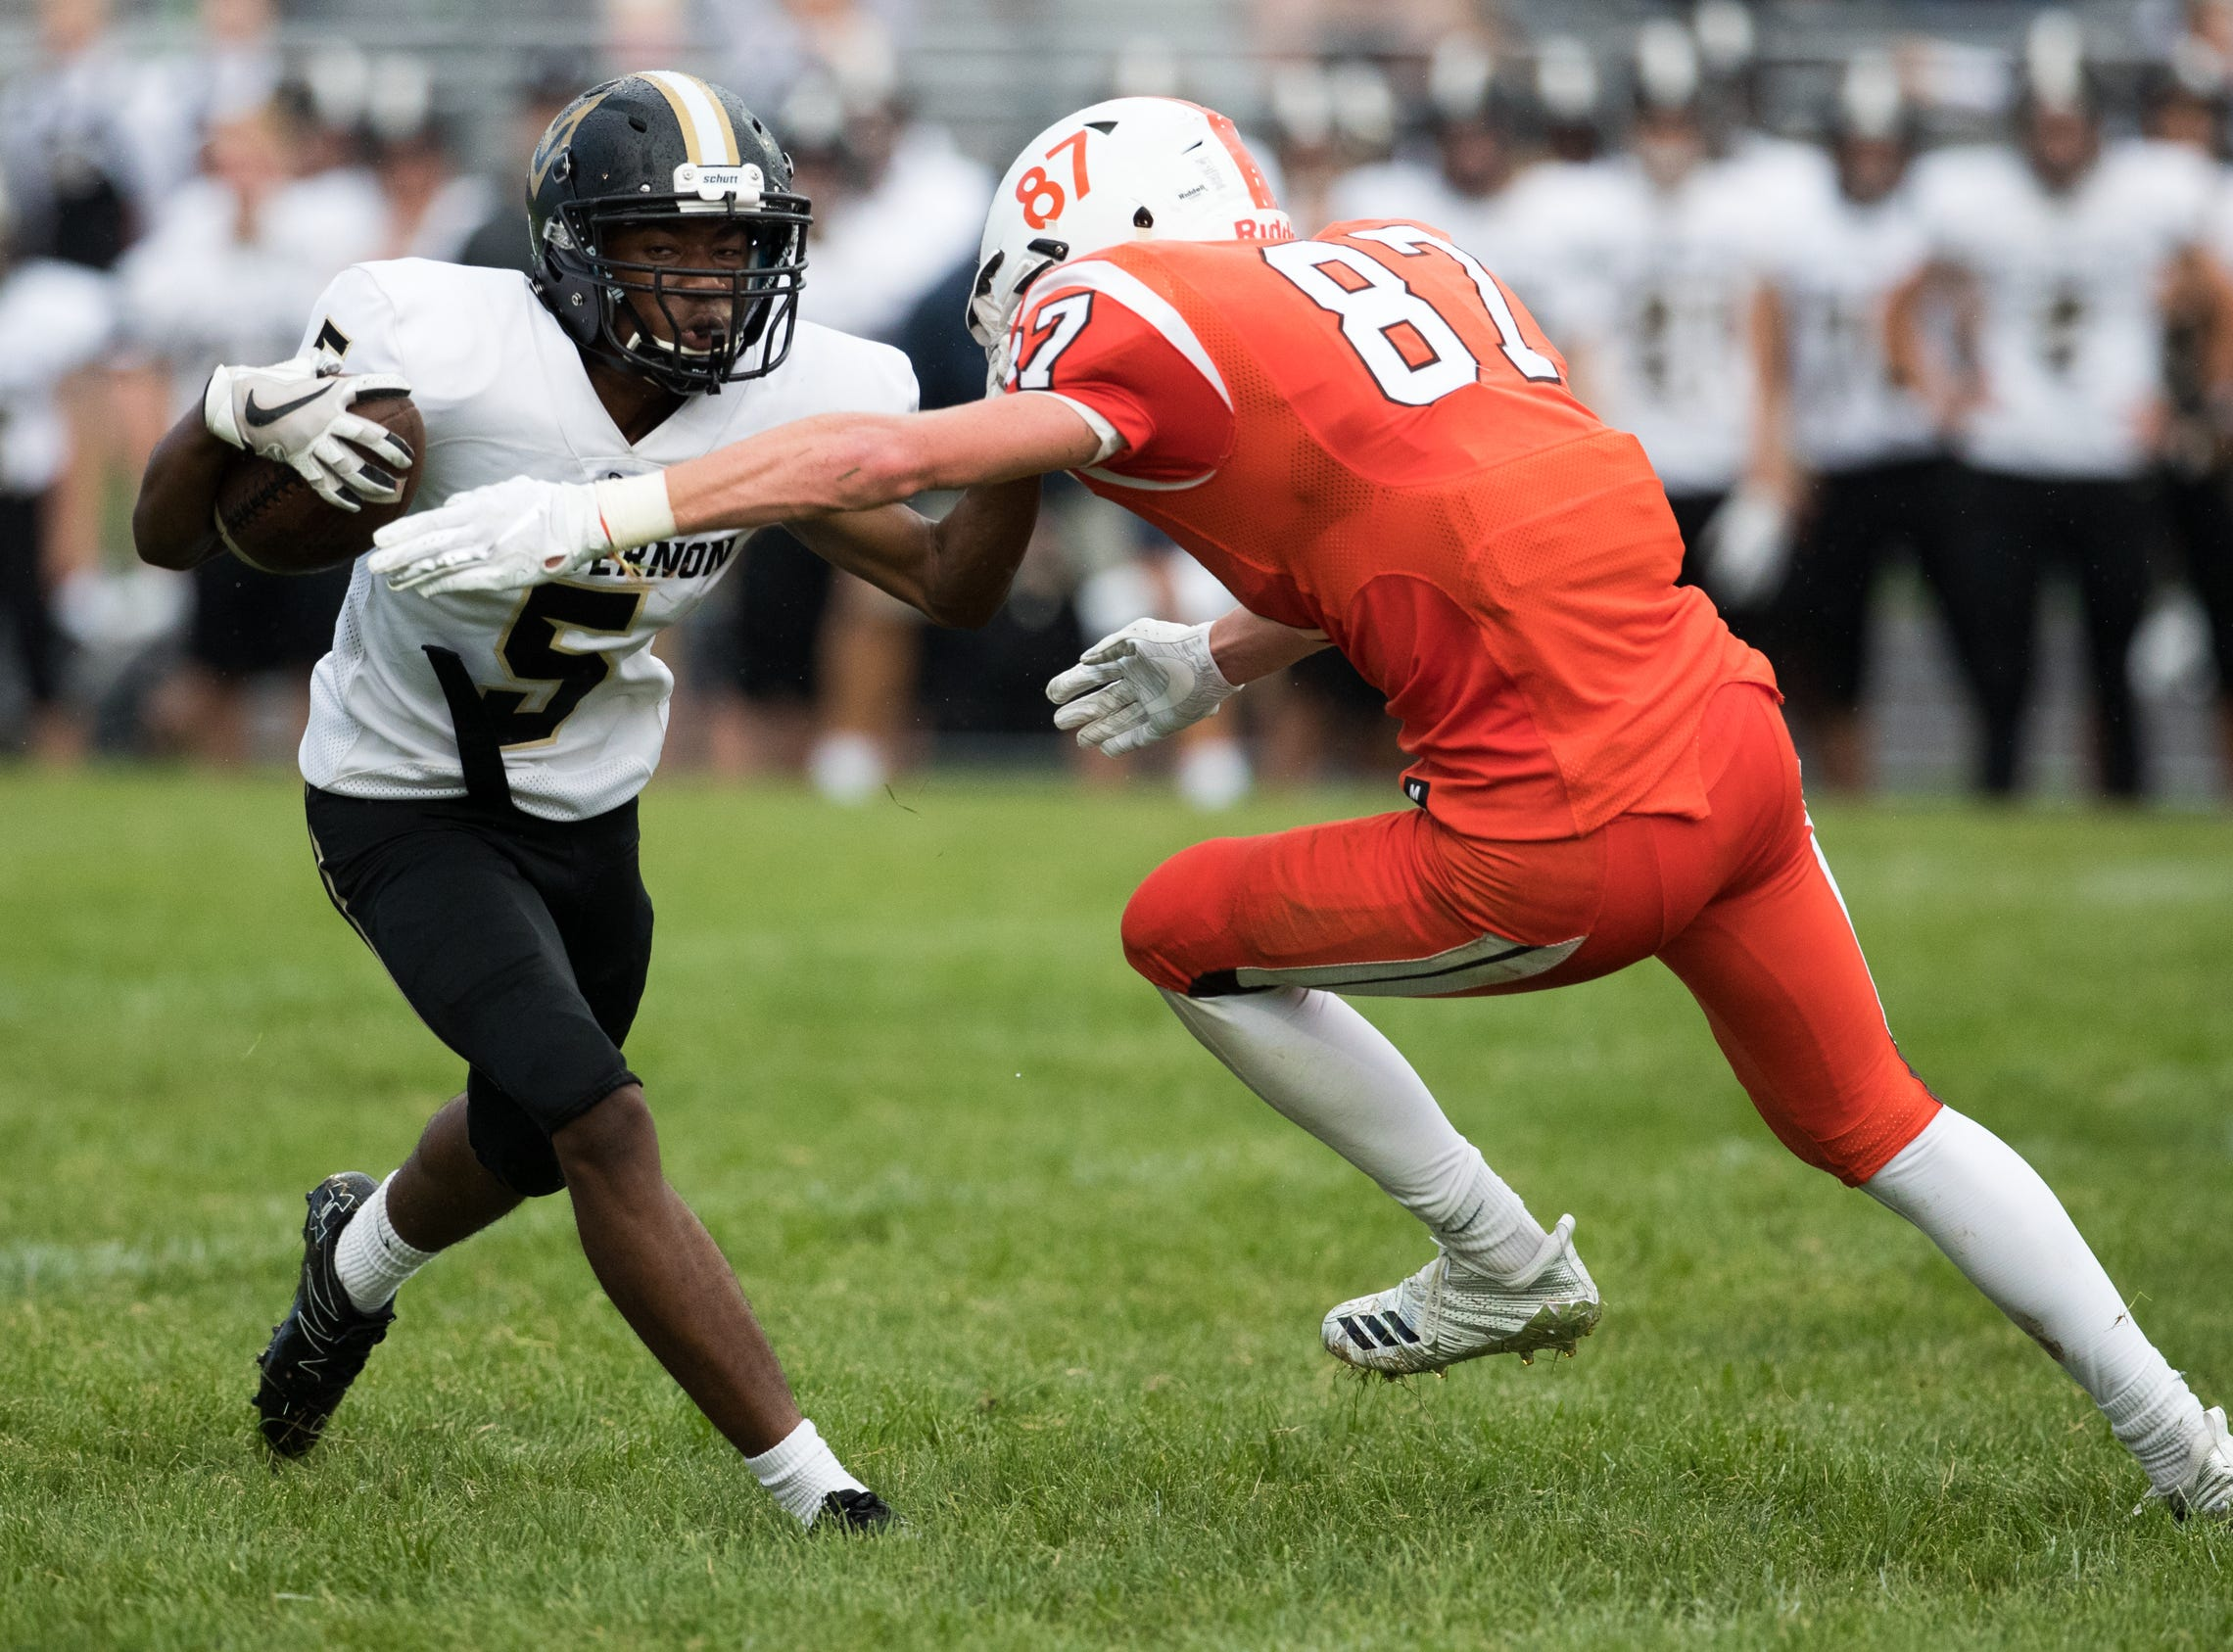 DaRell Jackson (left), of Mount Vernon High School, looks to slip a tackle by Brent Pennington at Hamilton Heights High School football, won by MVHS, 43-14, Arcadia, Friday, Aug. 17, 2018. This game is the first for HHHS head coach Jon Kirschner, who faced his father Mike Kirschner, a veteran and champion coach in his first season at MVHS.